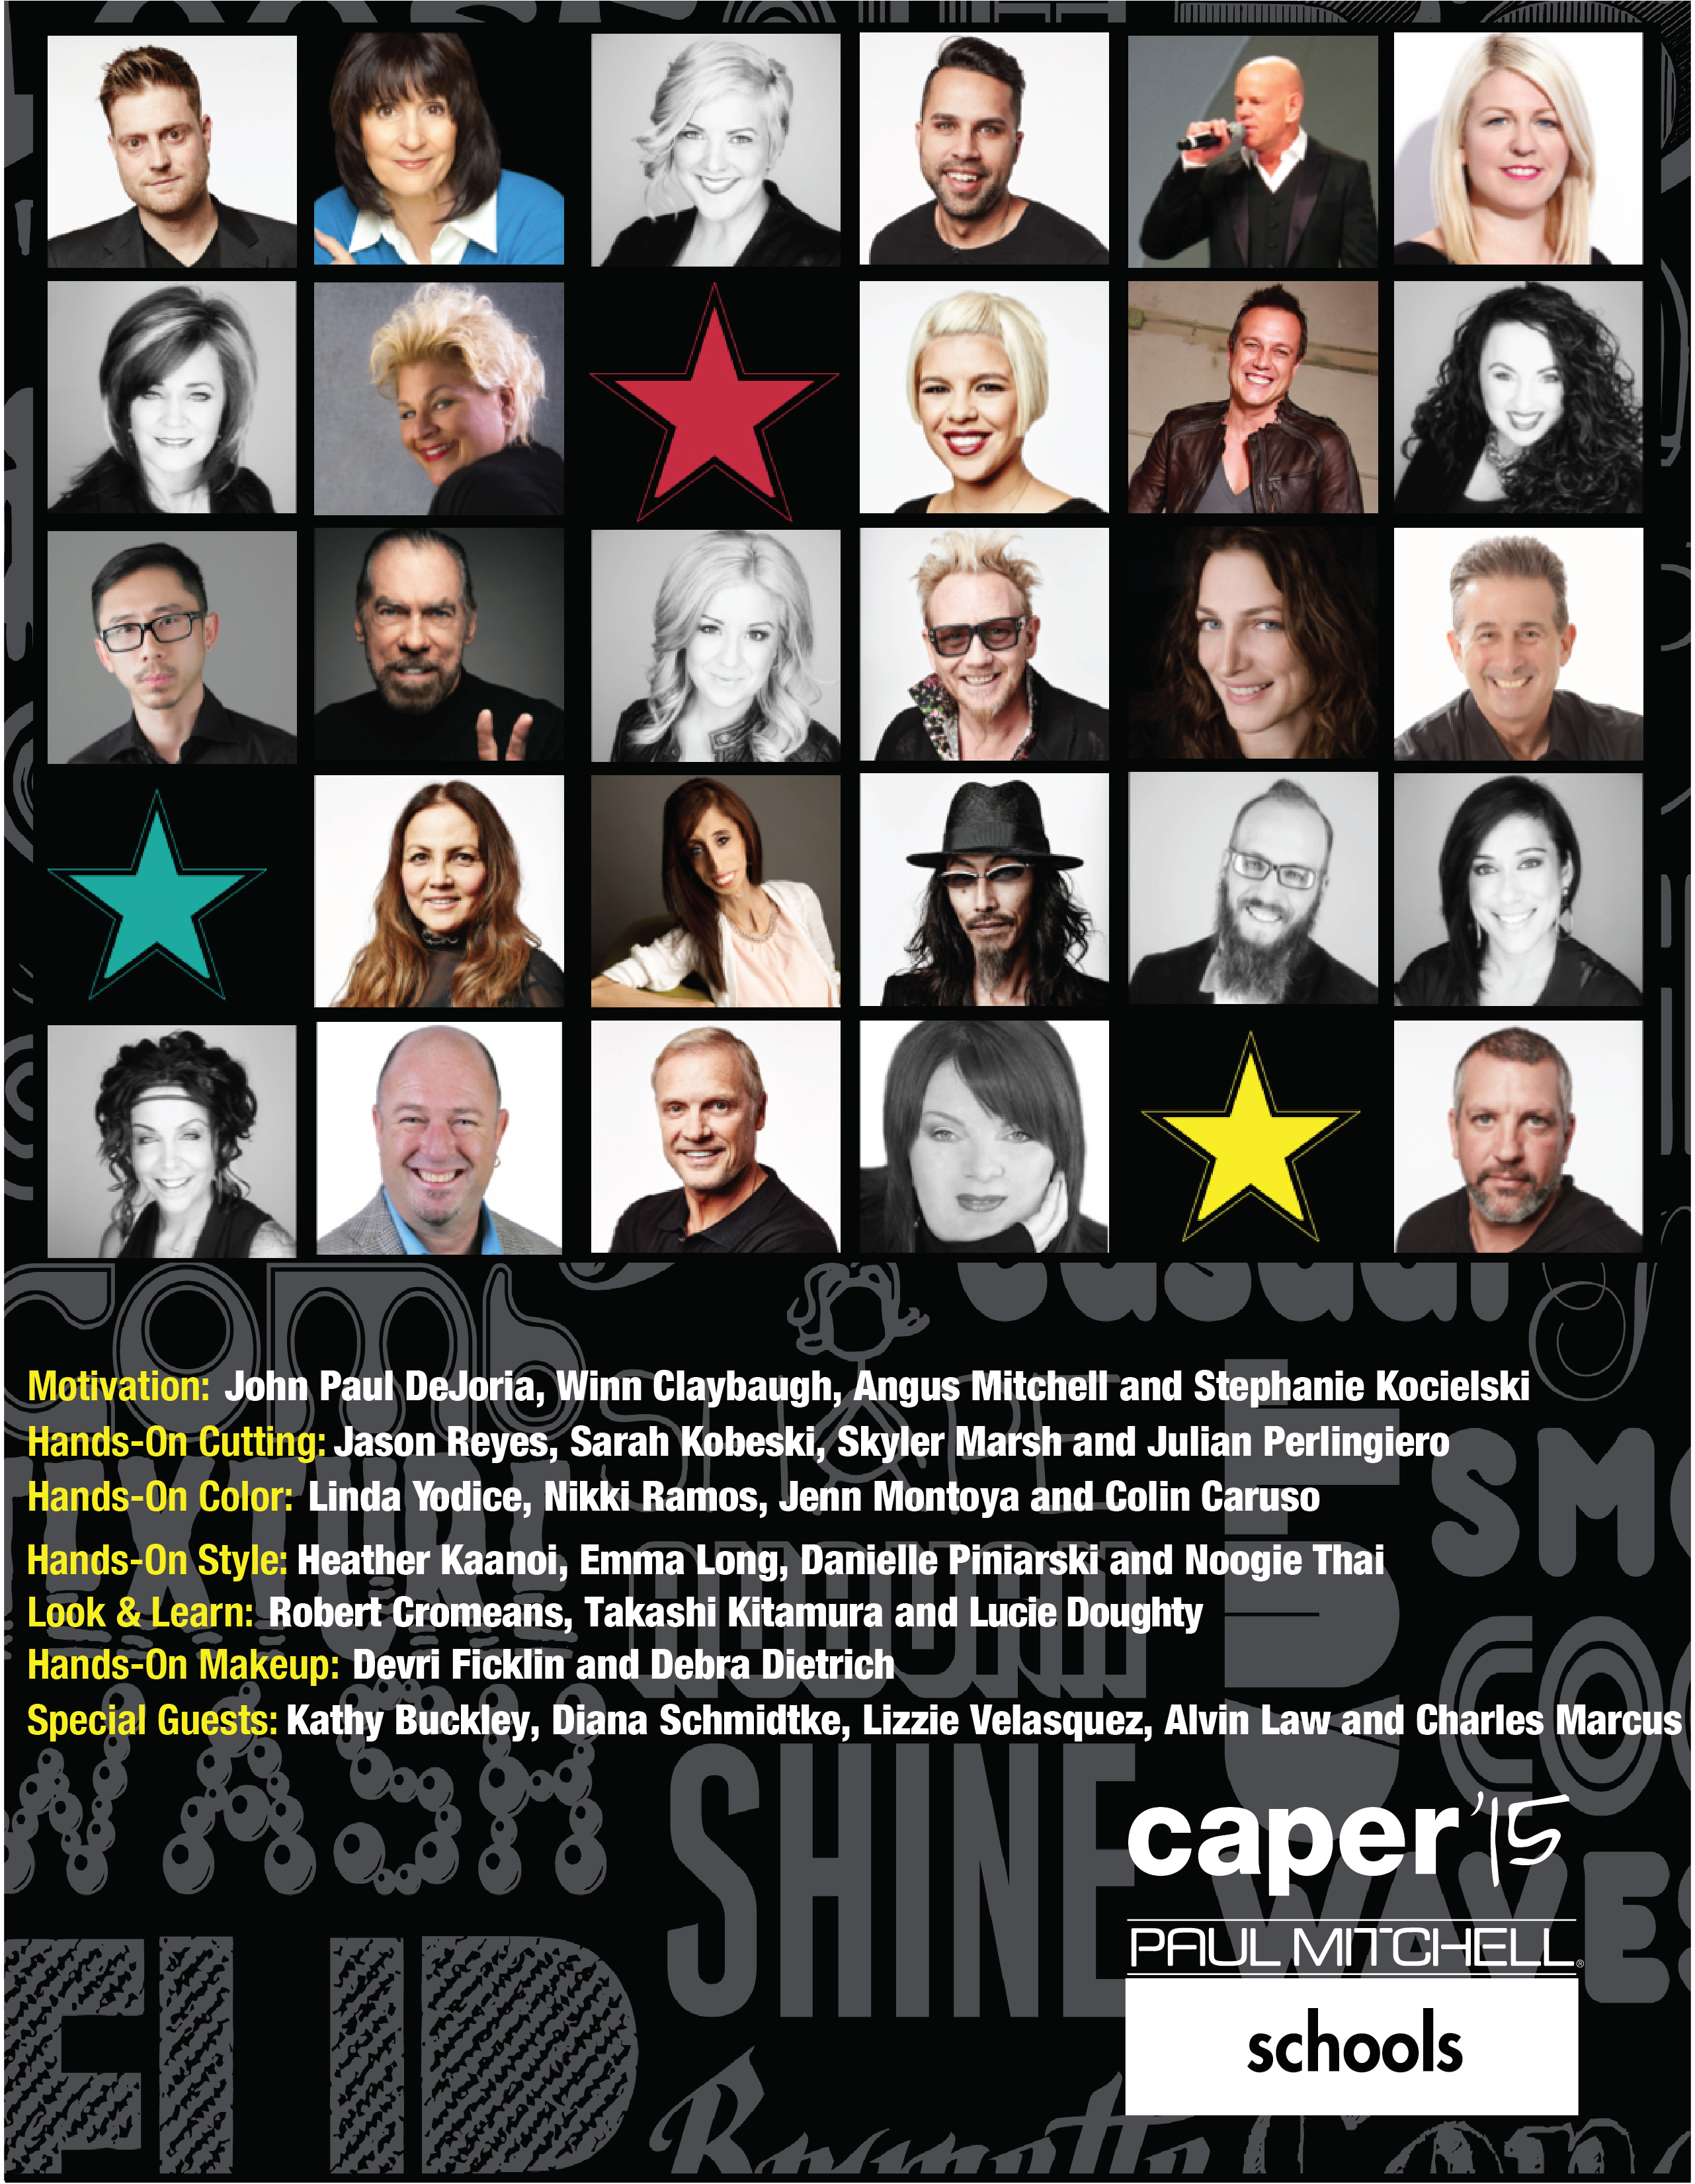 #Caper15: Stellar Lineup Planned for Paul Mitchell Schools' Event